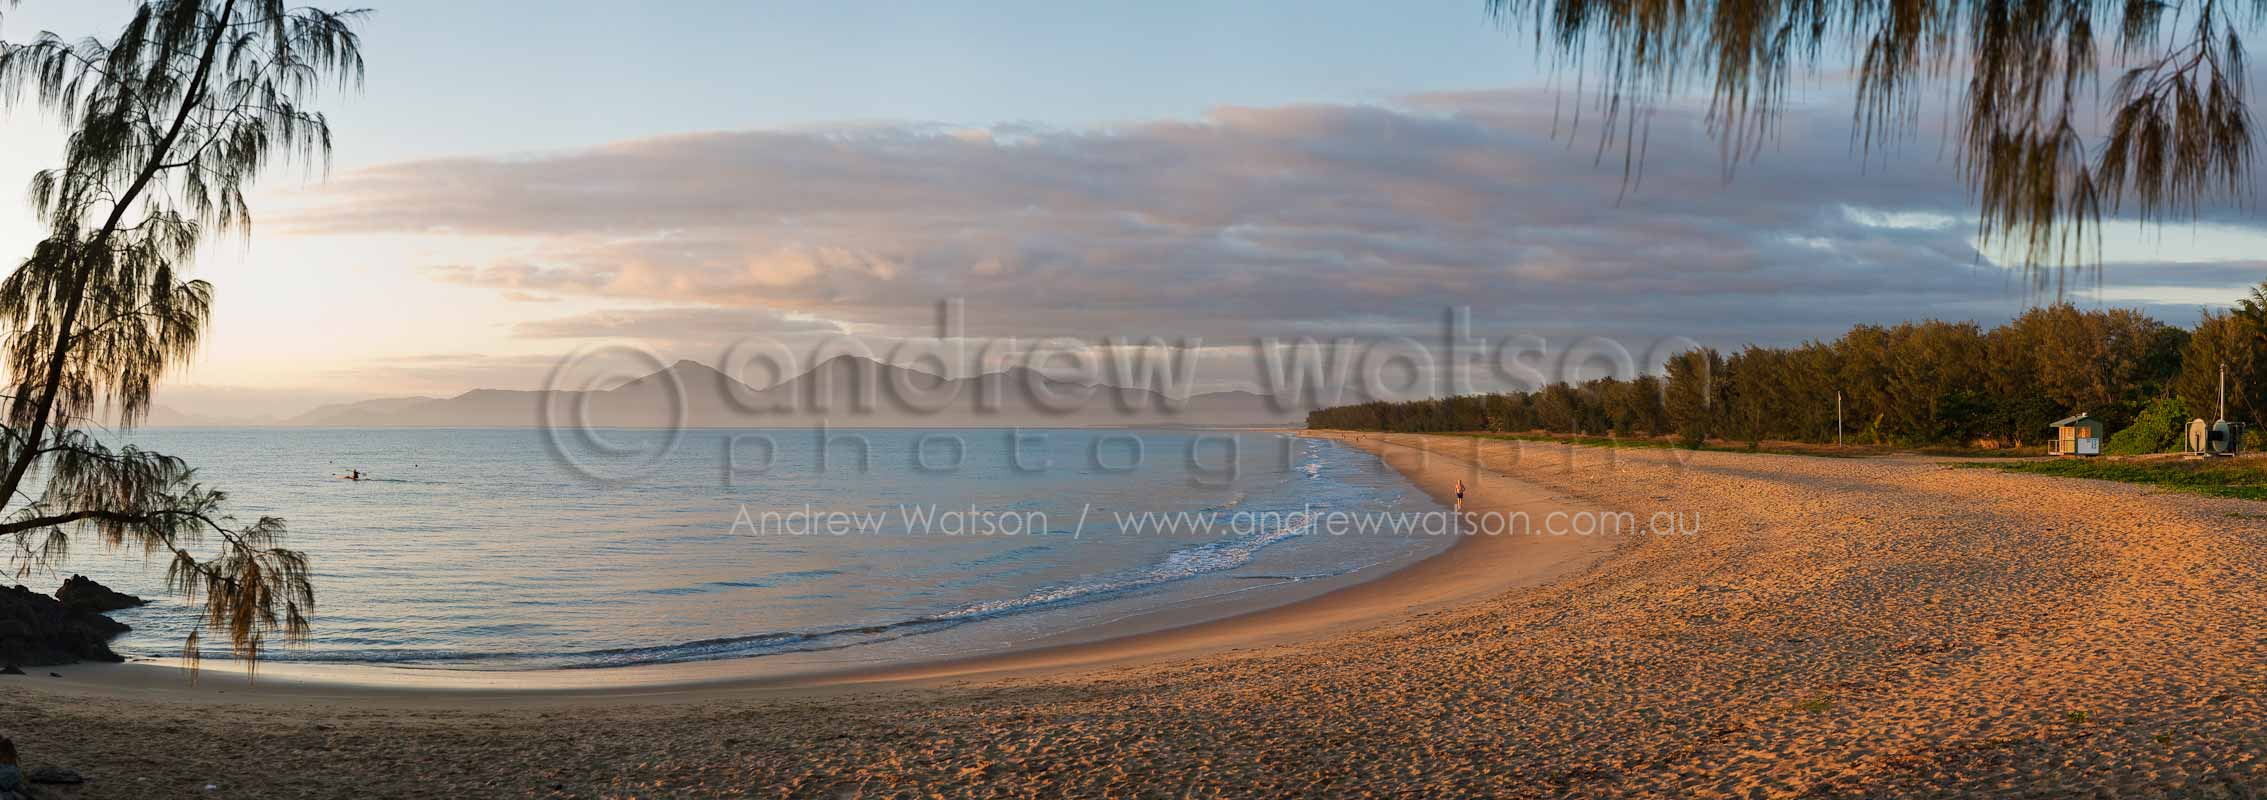 View along Yorkeys Knob Beach at dawnCairns, North QueenslandImage available for licensing or as a fine-art print... please enquire